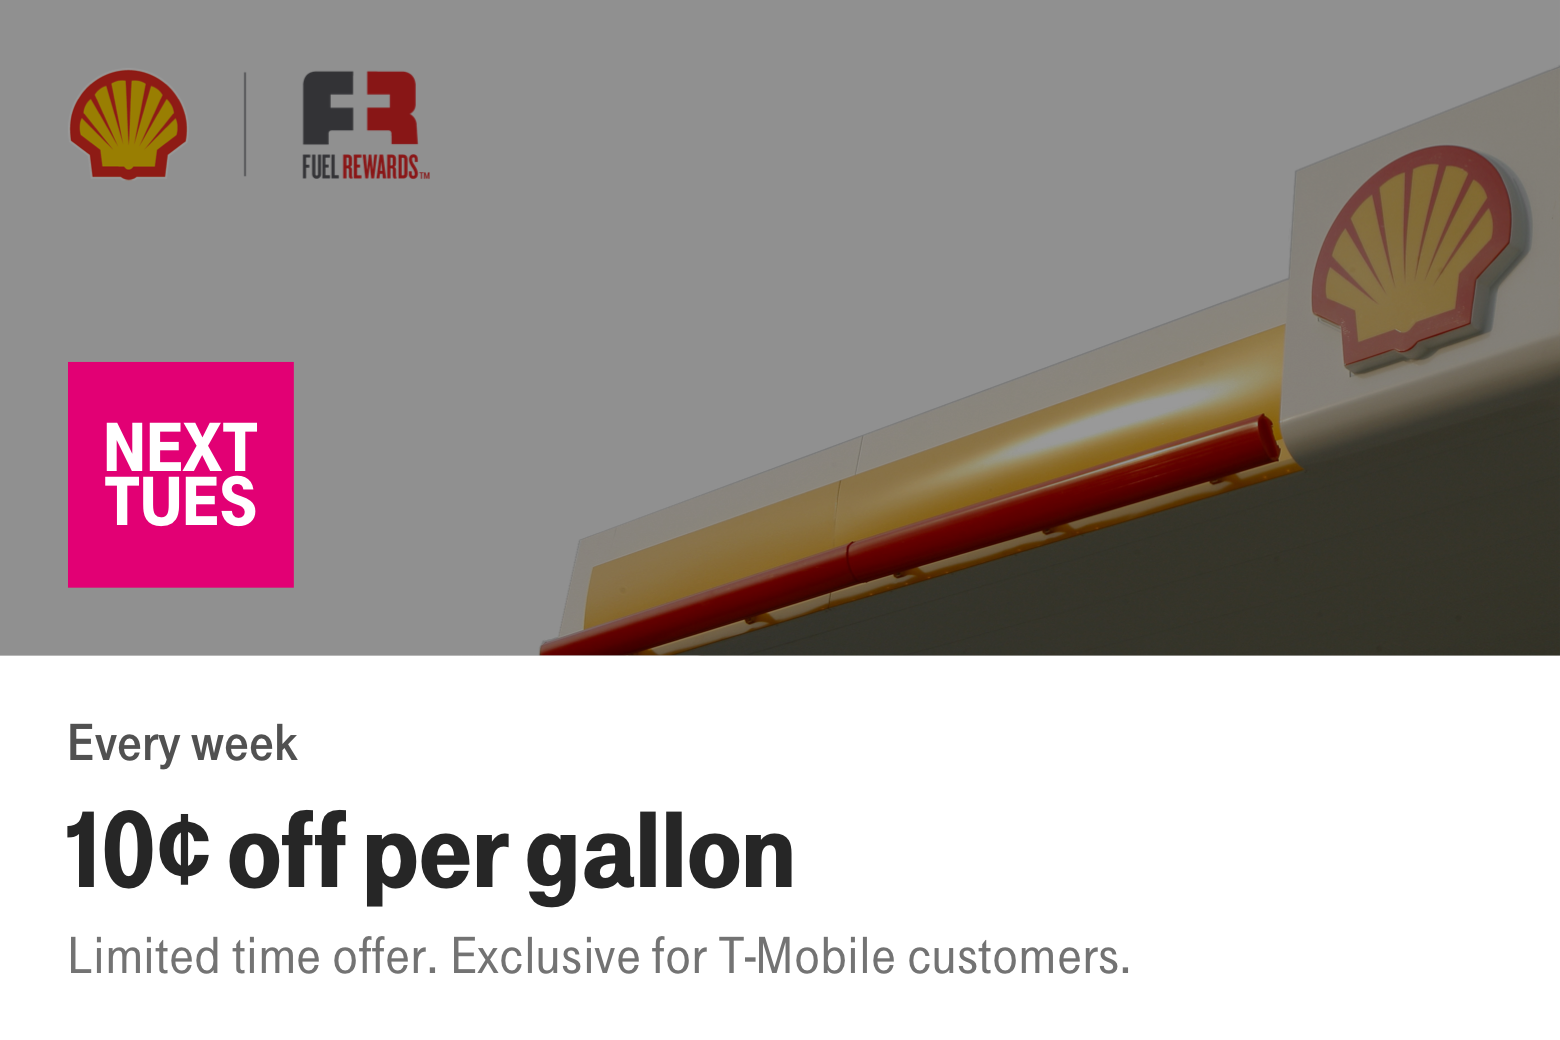 Shell. Fuel Rewards. Next Tues. Every week. 10 cents off per gallon. Limited time offer. Exclusive for T-Mobile customers.